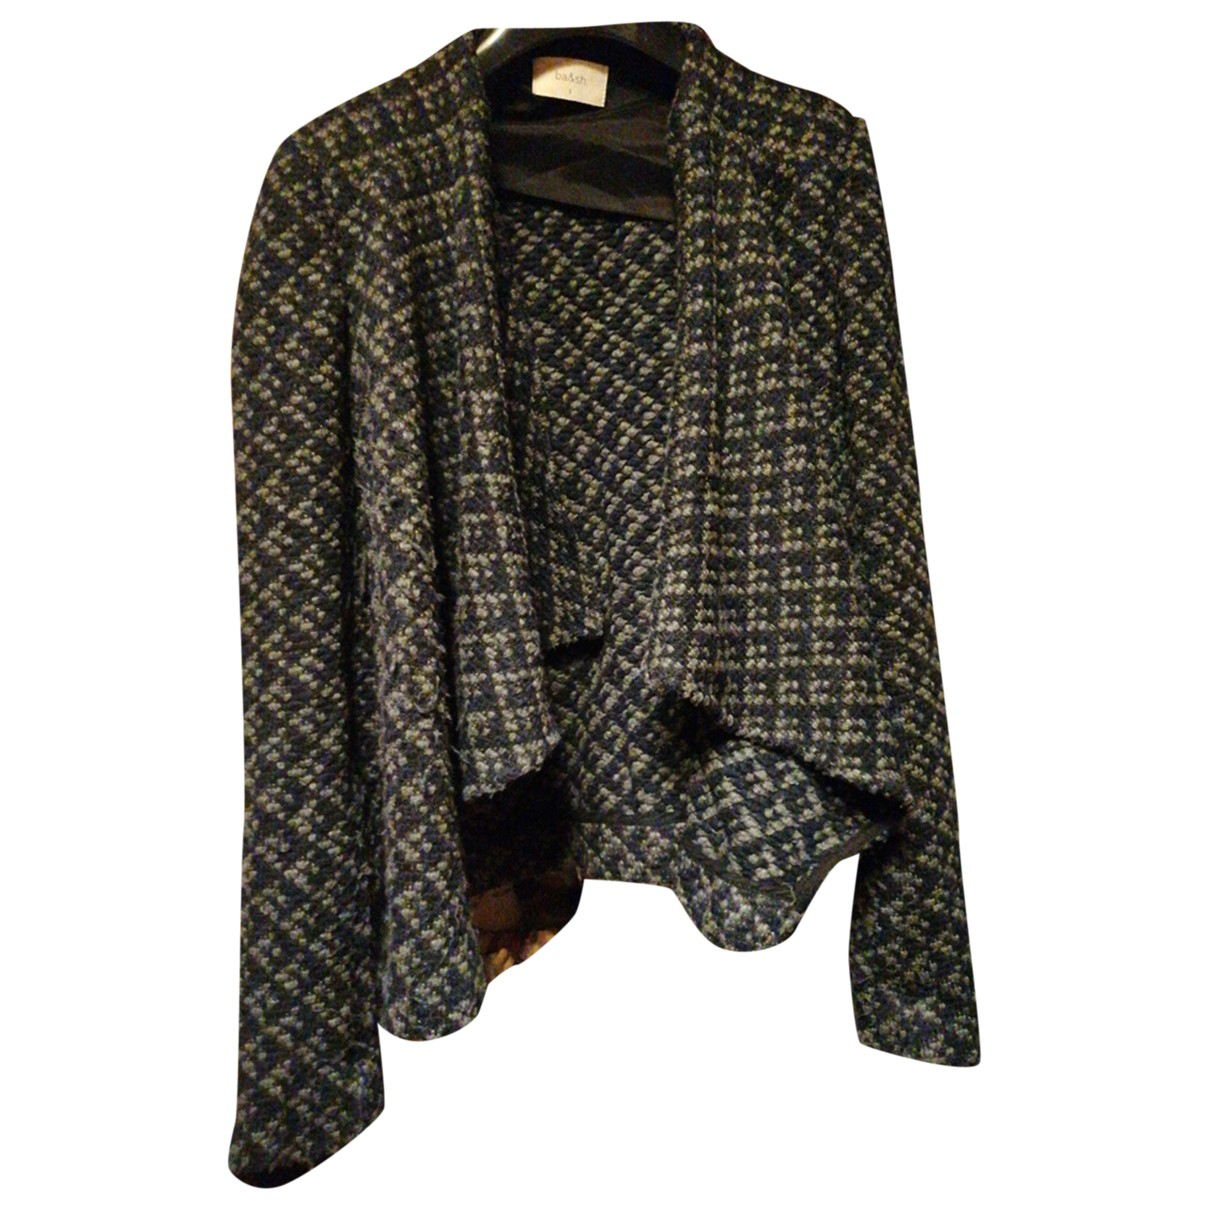 Ba&sh N Anthracite Wool jacket for Women 1 0-5